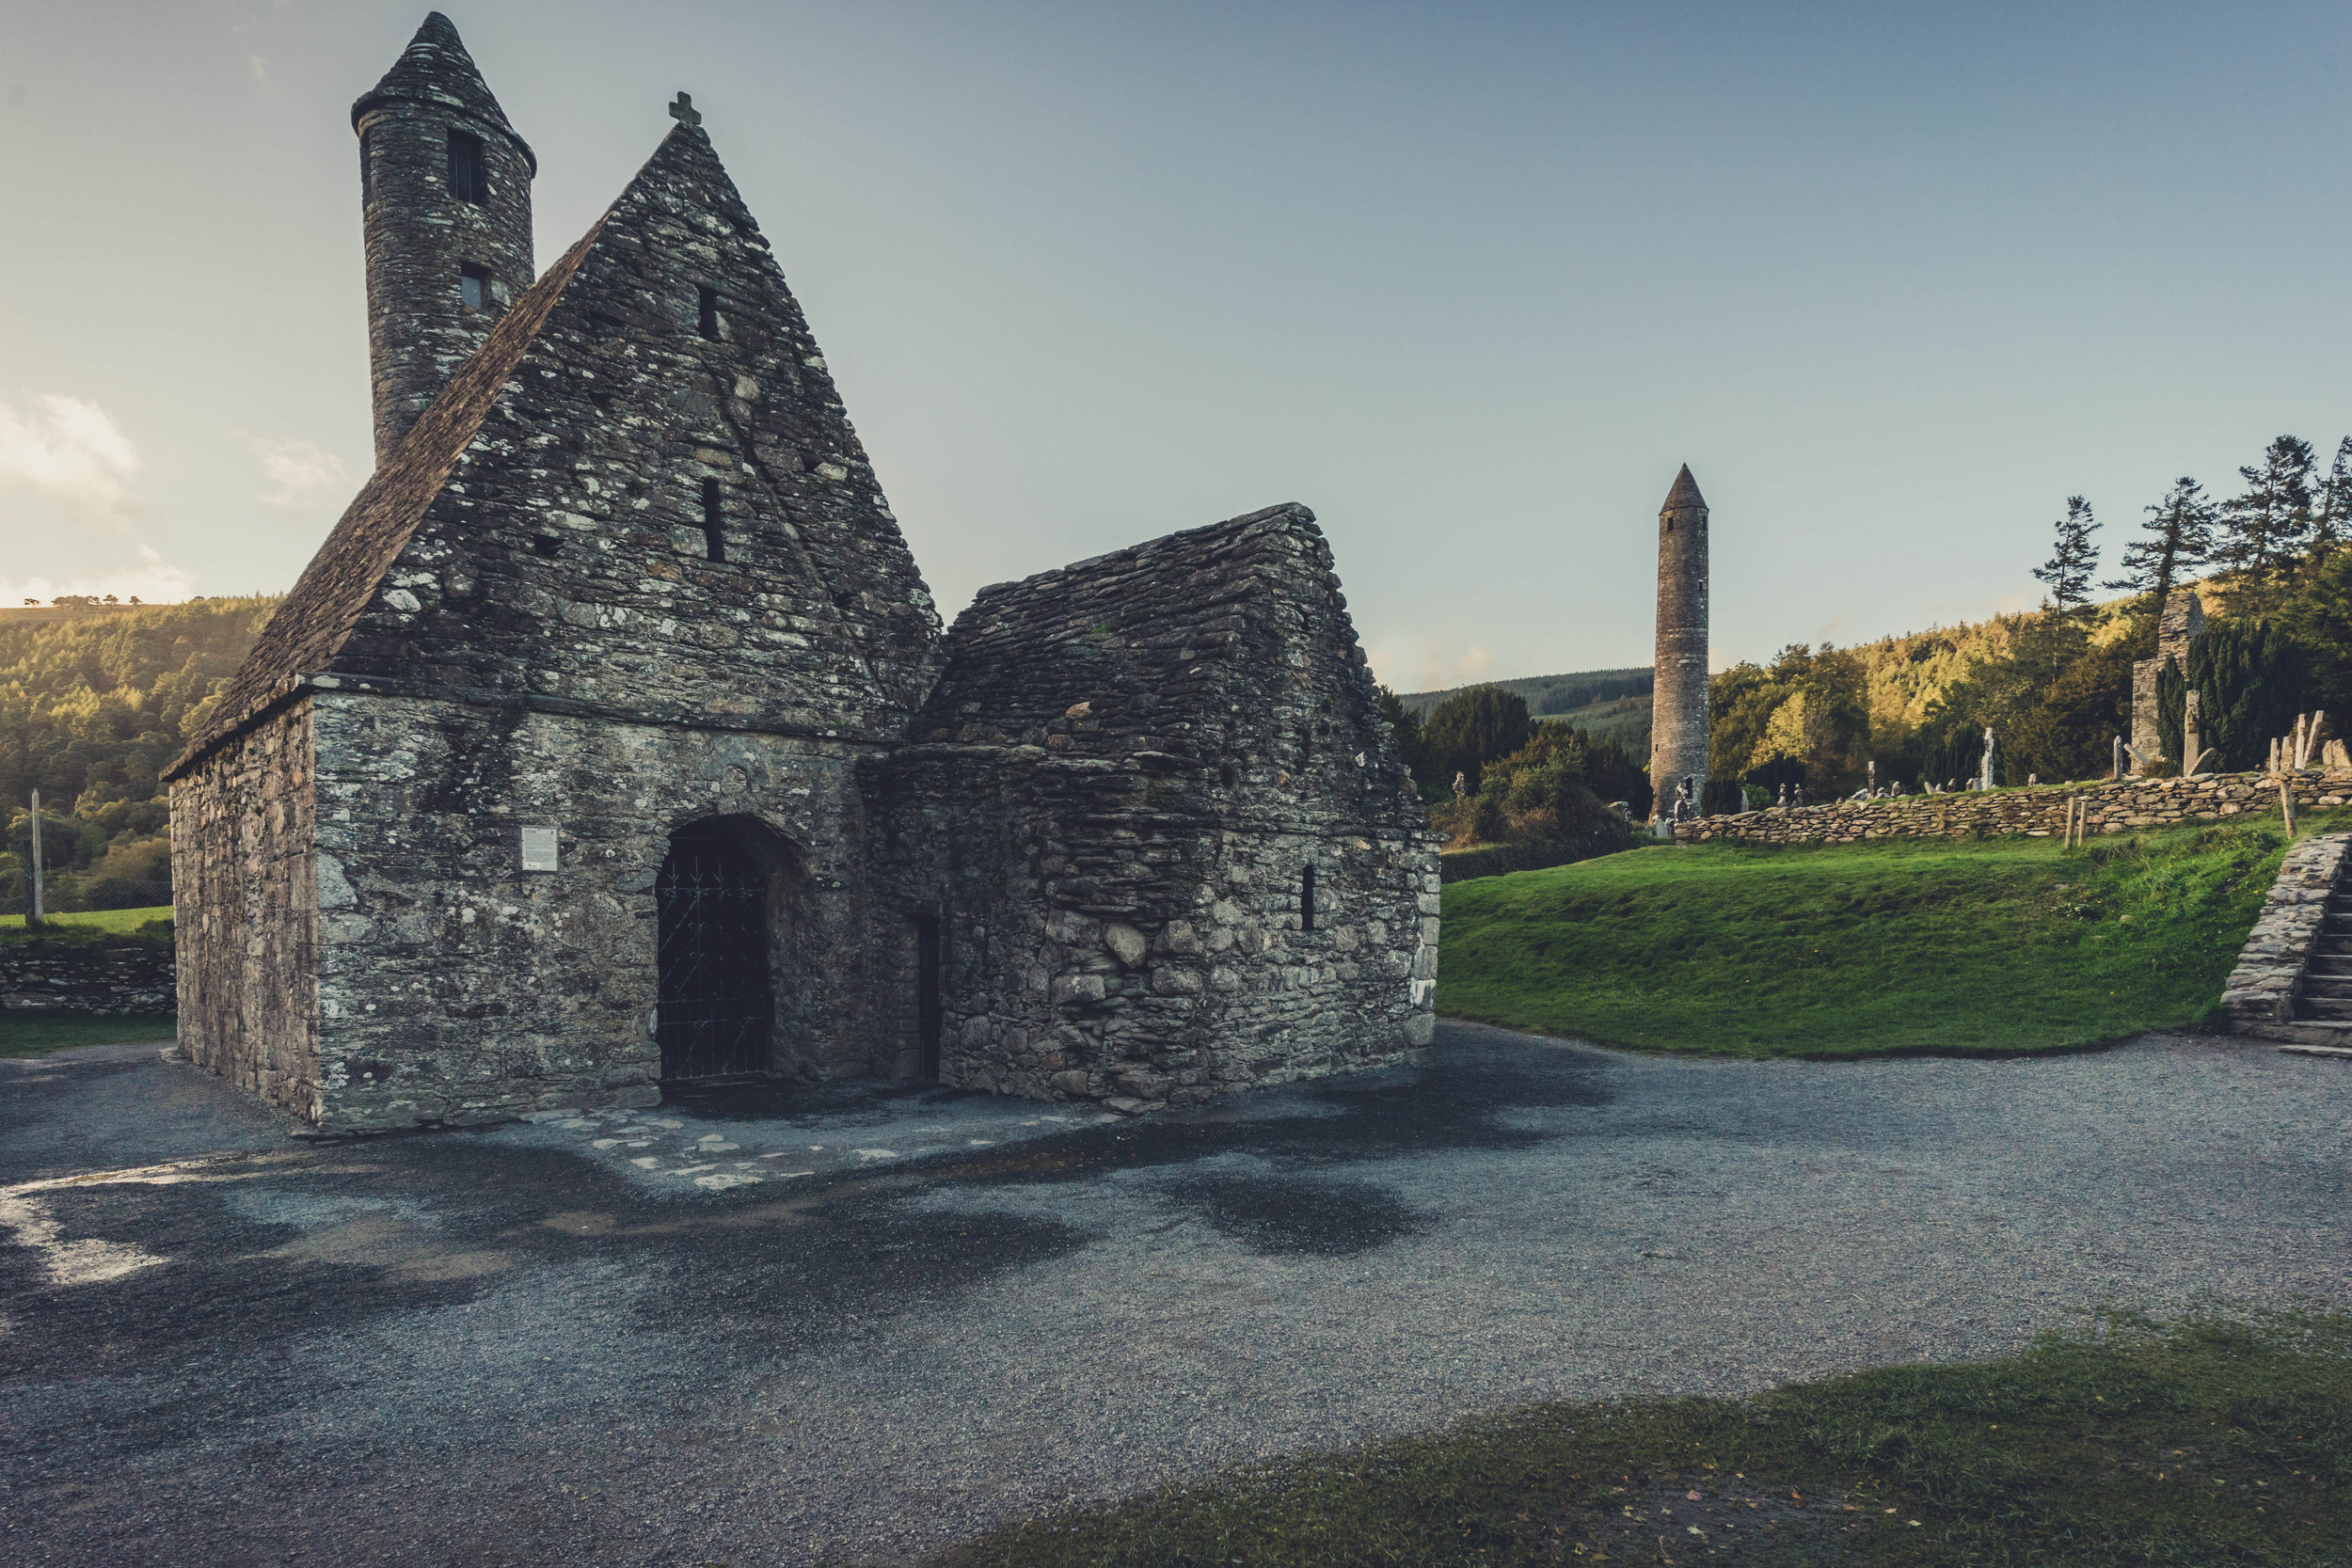 glendalough. irish history. county wicklow. round tower. hill walknig. hiking. grave yard. wildlife. tombstones. lakes. blue sky. old chirch and tower.jpg